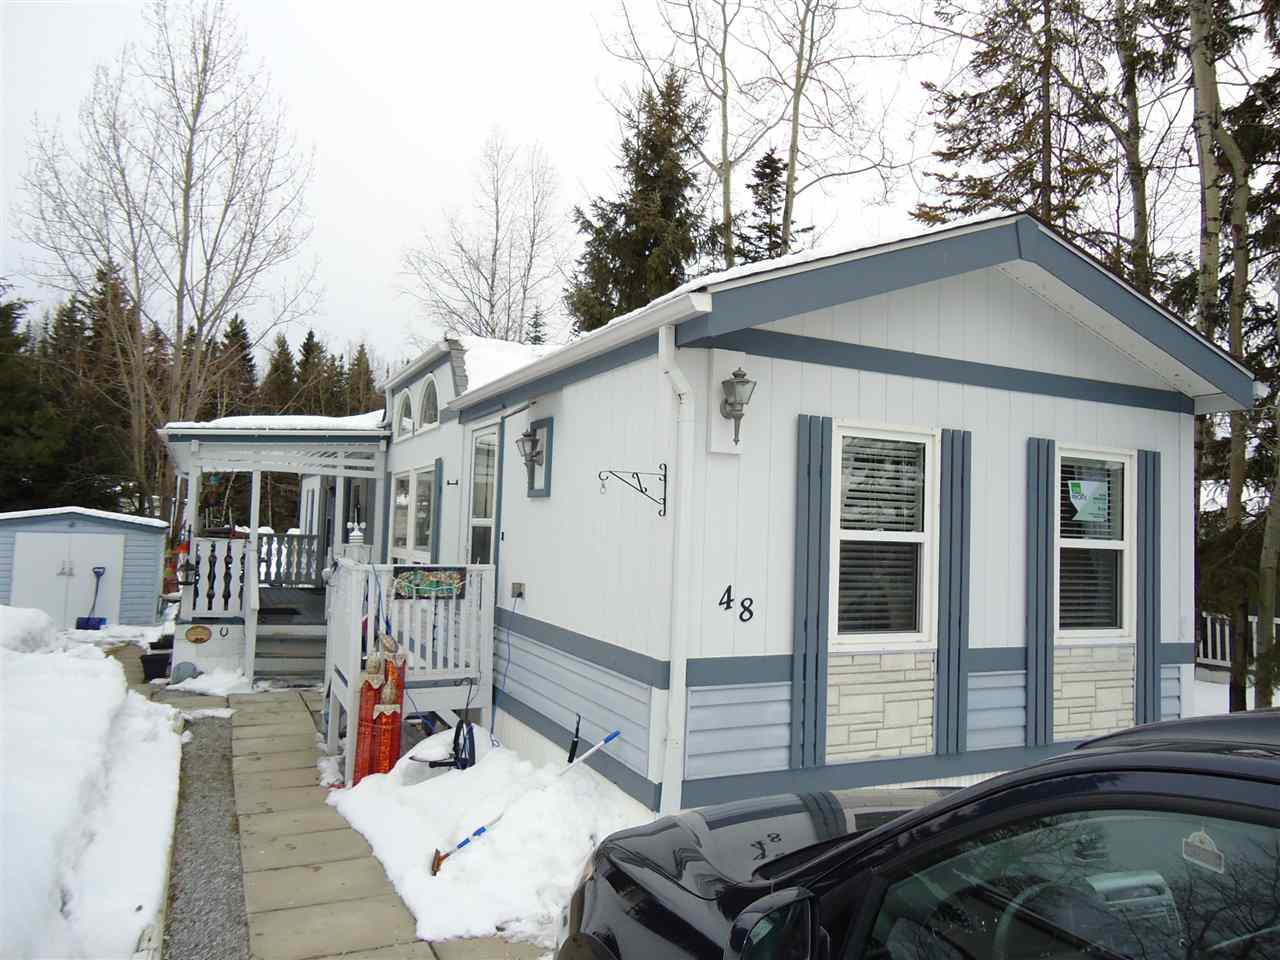 Main Photo: 48 7817 S 97 Highway in Prince George: Sintich Manufactured Home for sale (PG City South East (Zone 75))  : MLS®# R2254390